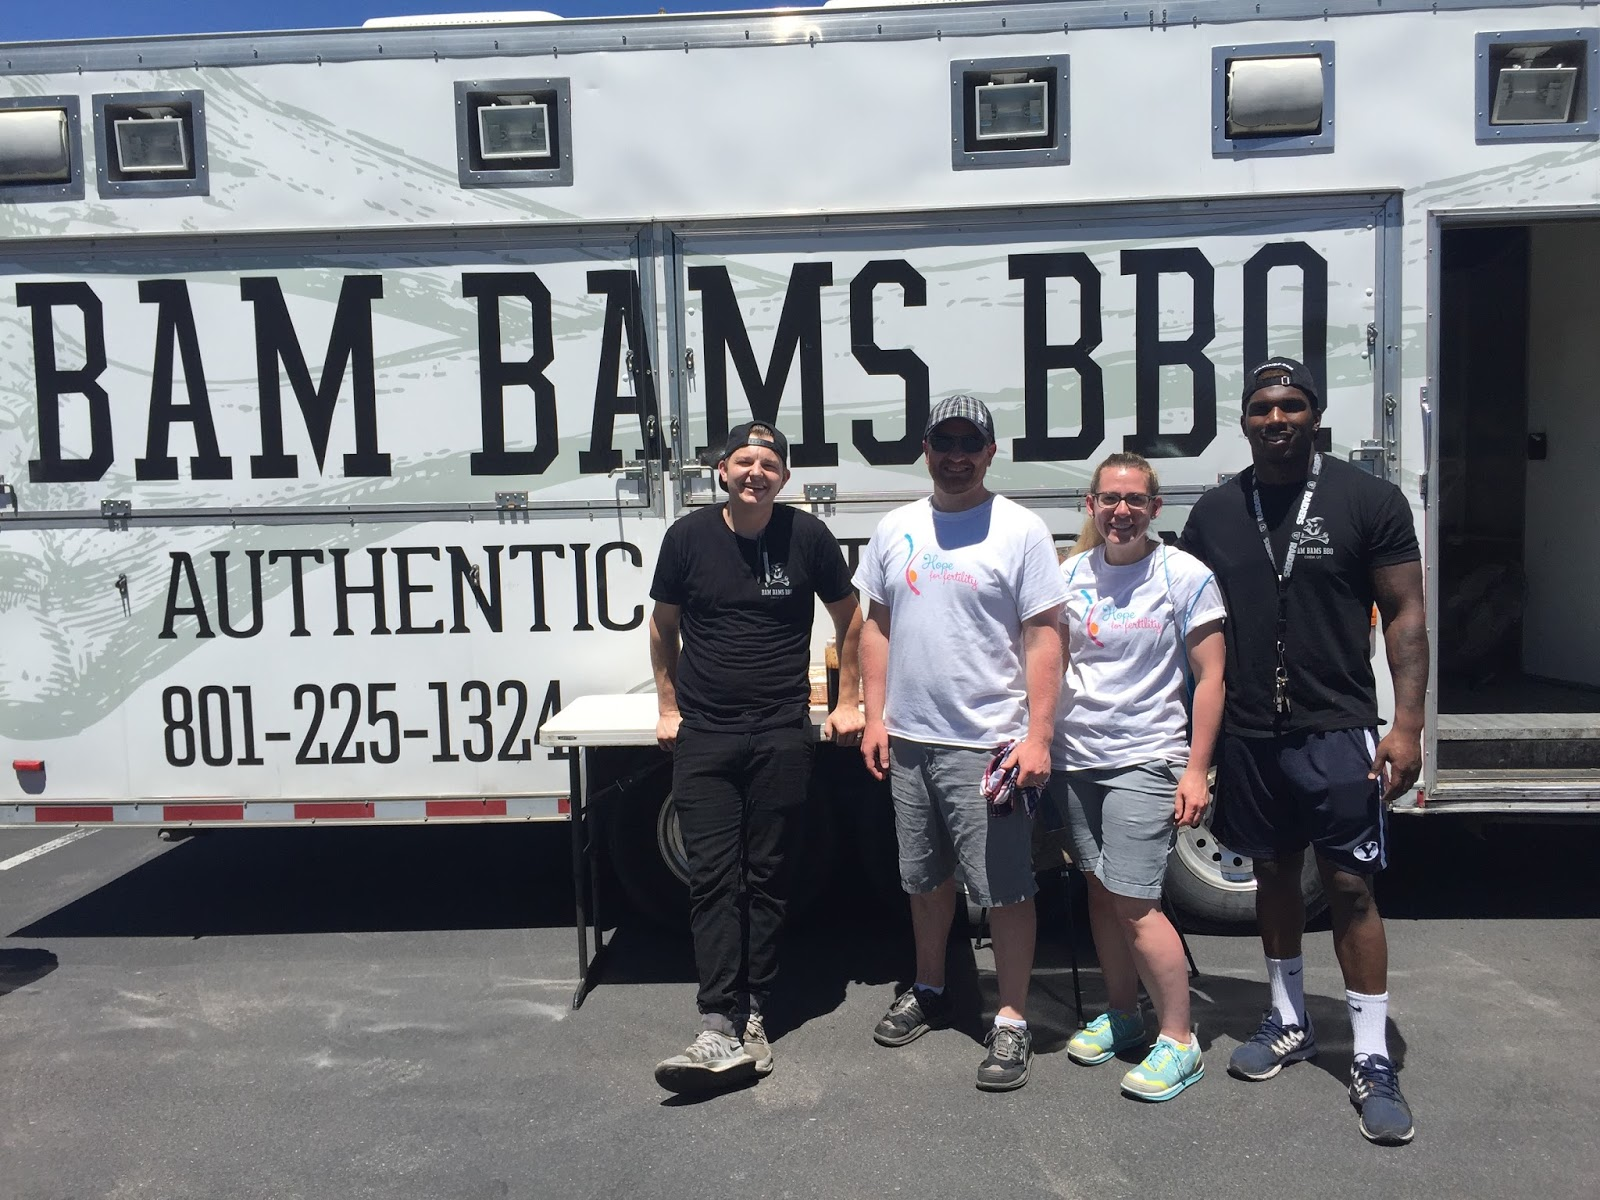 bam bams bbq at our fertility fundraiser